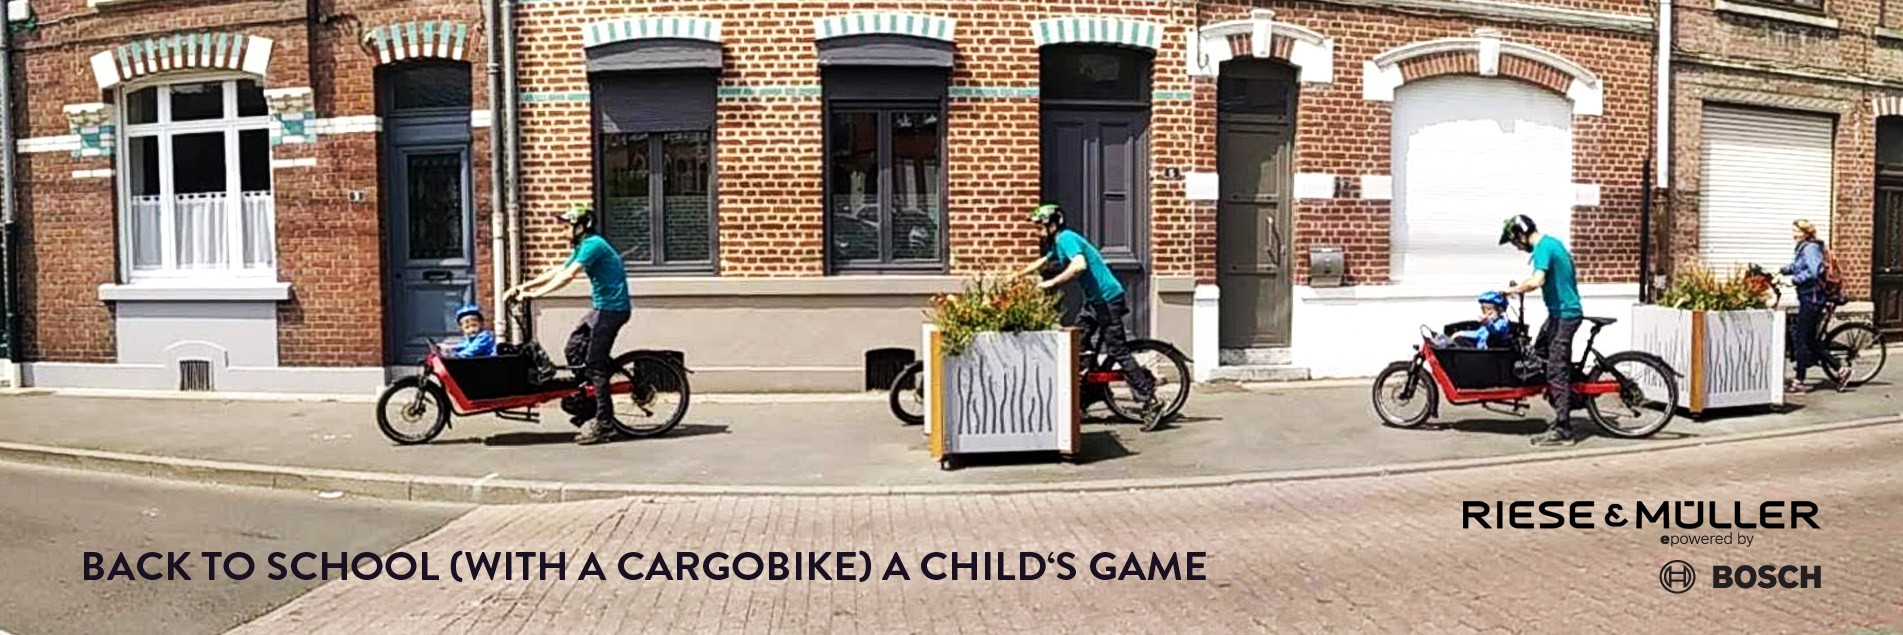 Back to school cargo bike